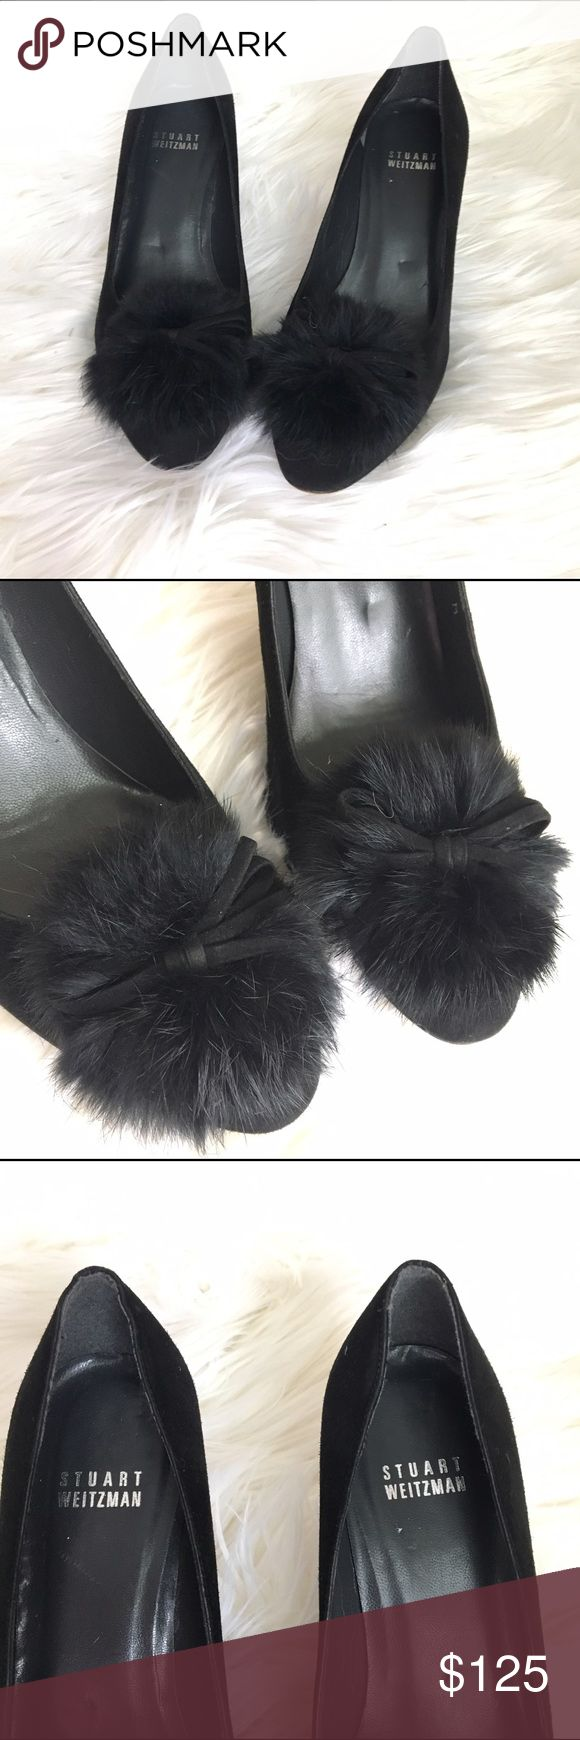 """STUART WEITZMAN furball suede pumps size 6 Gorgeous black Stuart Weitzman pumps. Genuine leather sole and suede upper. Detailed with a black fur ball and leather bow. These heels are in excellent condition with minimal signs of wear anywhere on the inner and outer shoe. Bottom sole shows normal signs of wear but nothing that can be seen while wearing. Approximate heel height is 3"""". Stuart Weitzman Shoes Heels"""